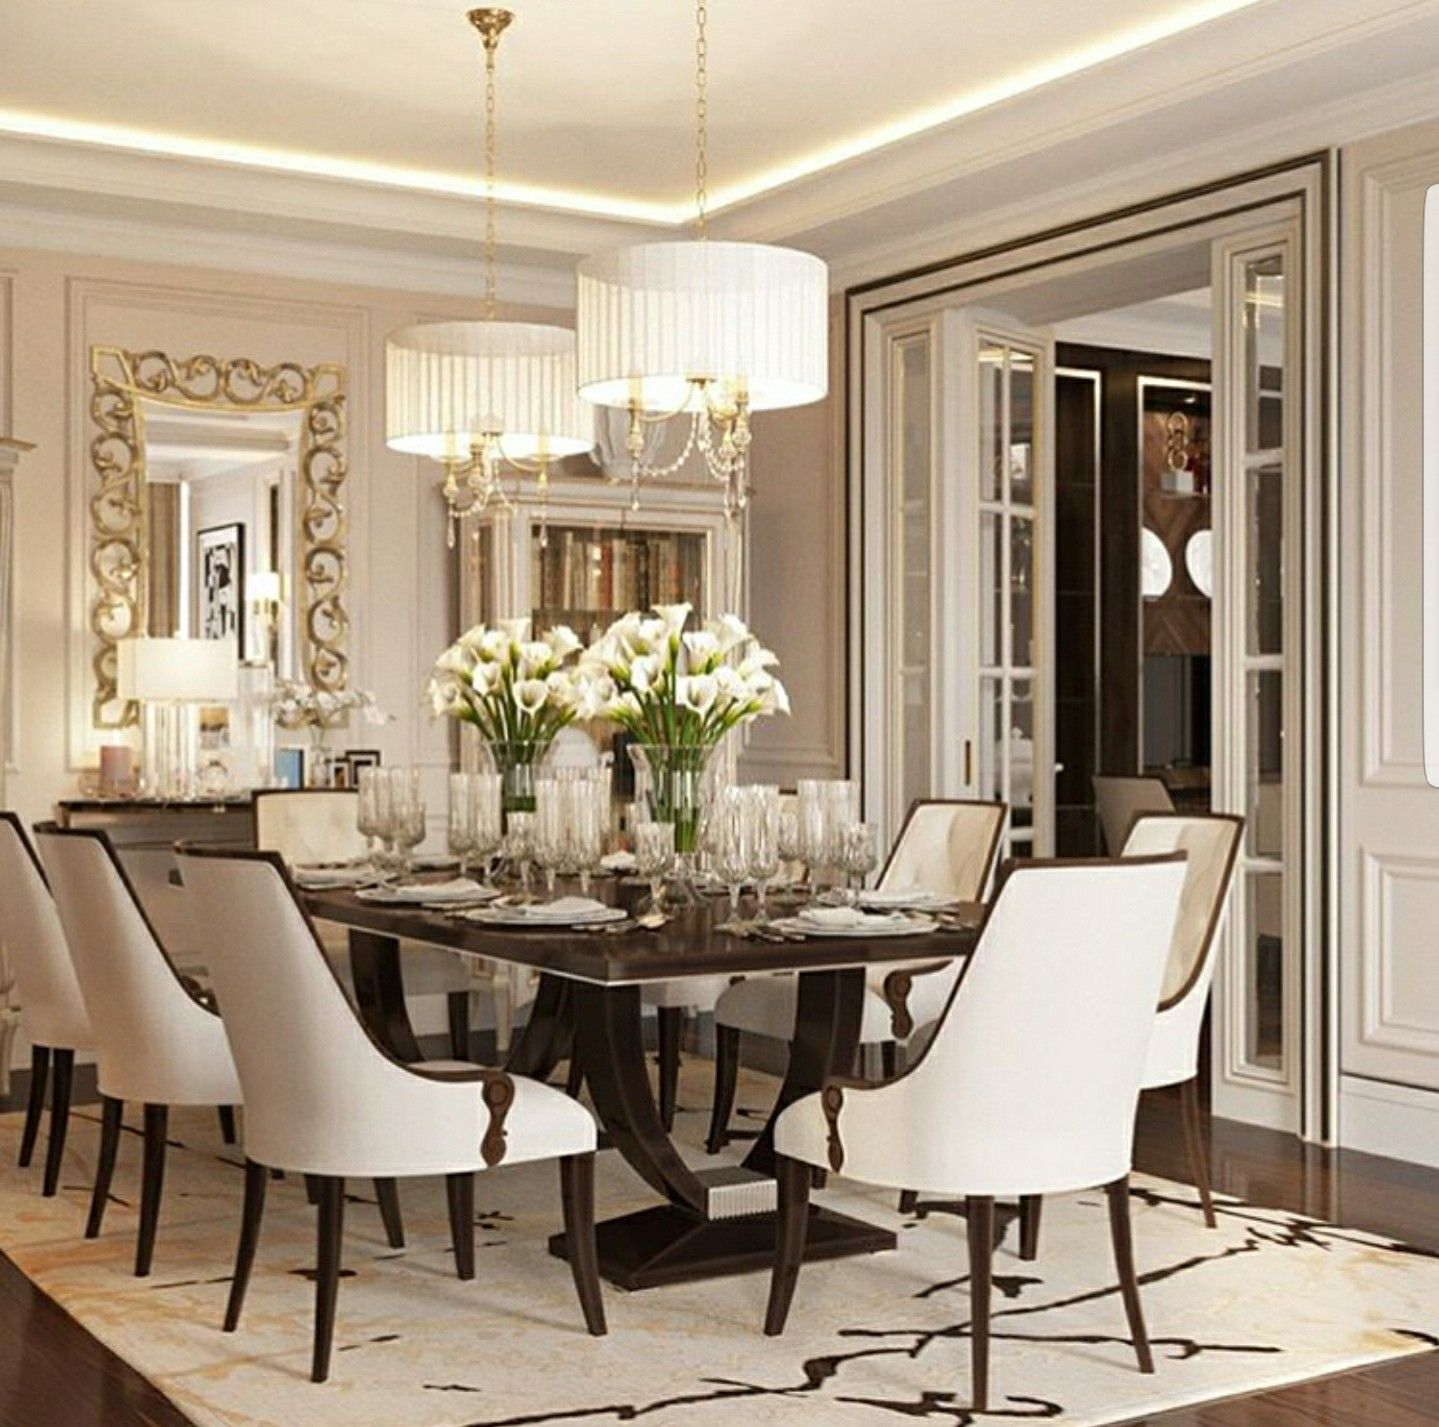 Pin By Anita K On Home Ideas Etc With Images Luxury Dining